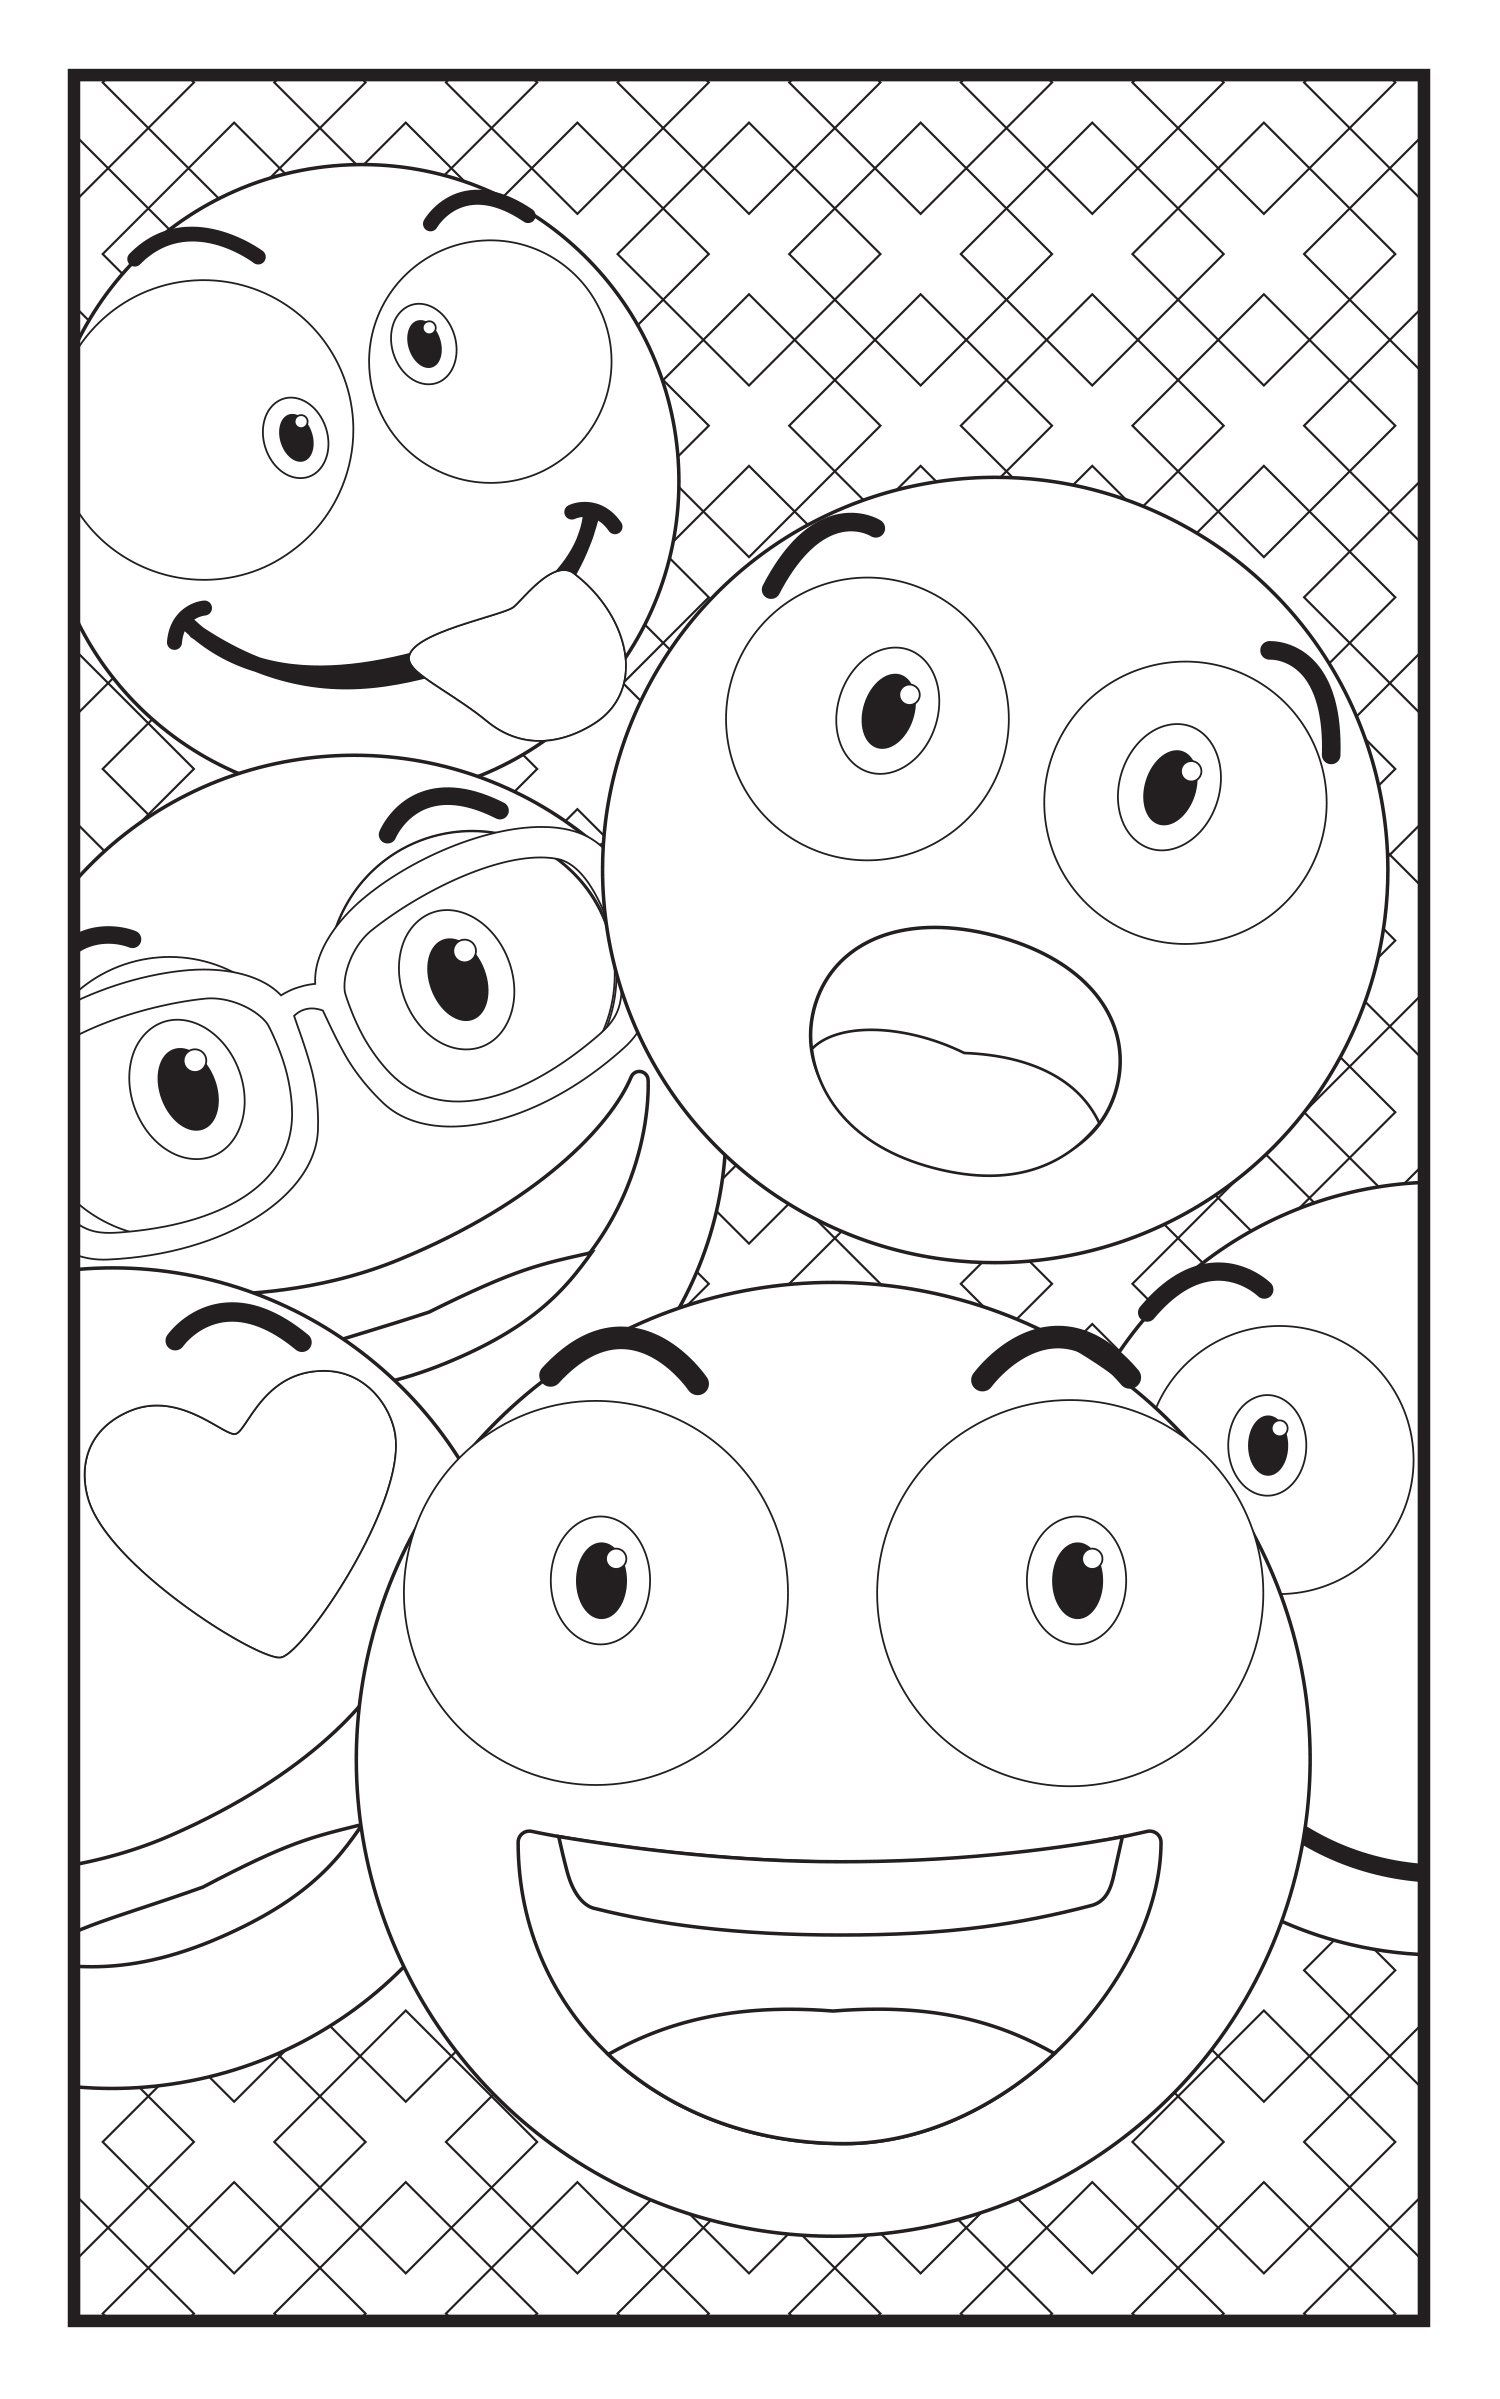 Amazon.com: Emoji Crazy Coloring Book 30 Cute Fun Pages: For ...